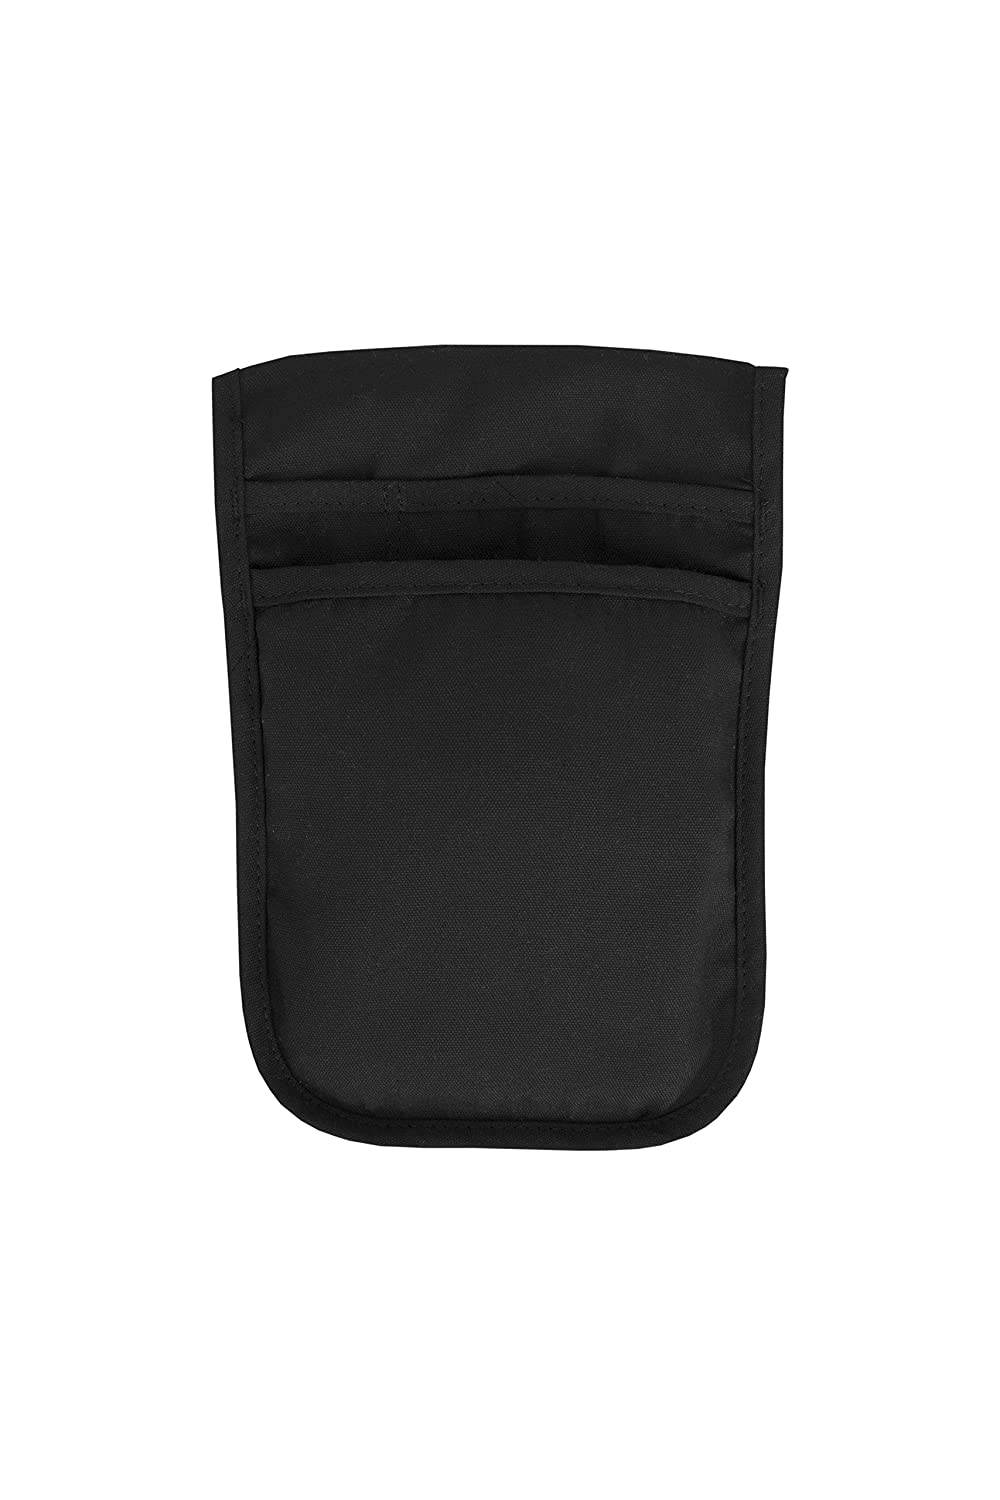 RITZ Food Service CL2PSPOUCHBK-1 2-Pocket Server Pouch, Black